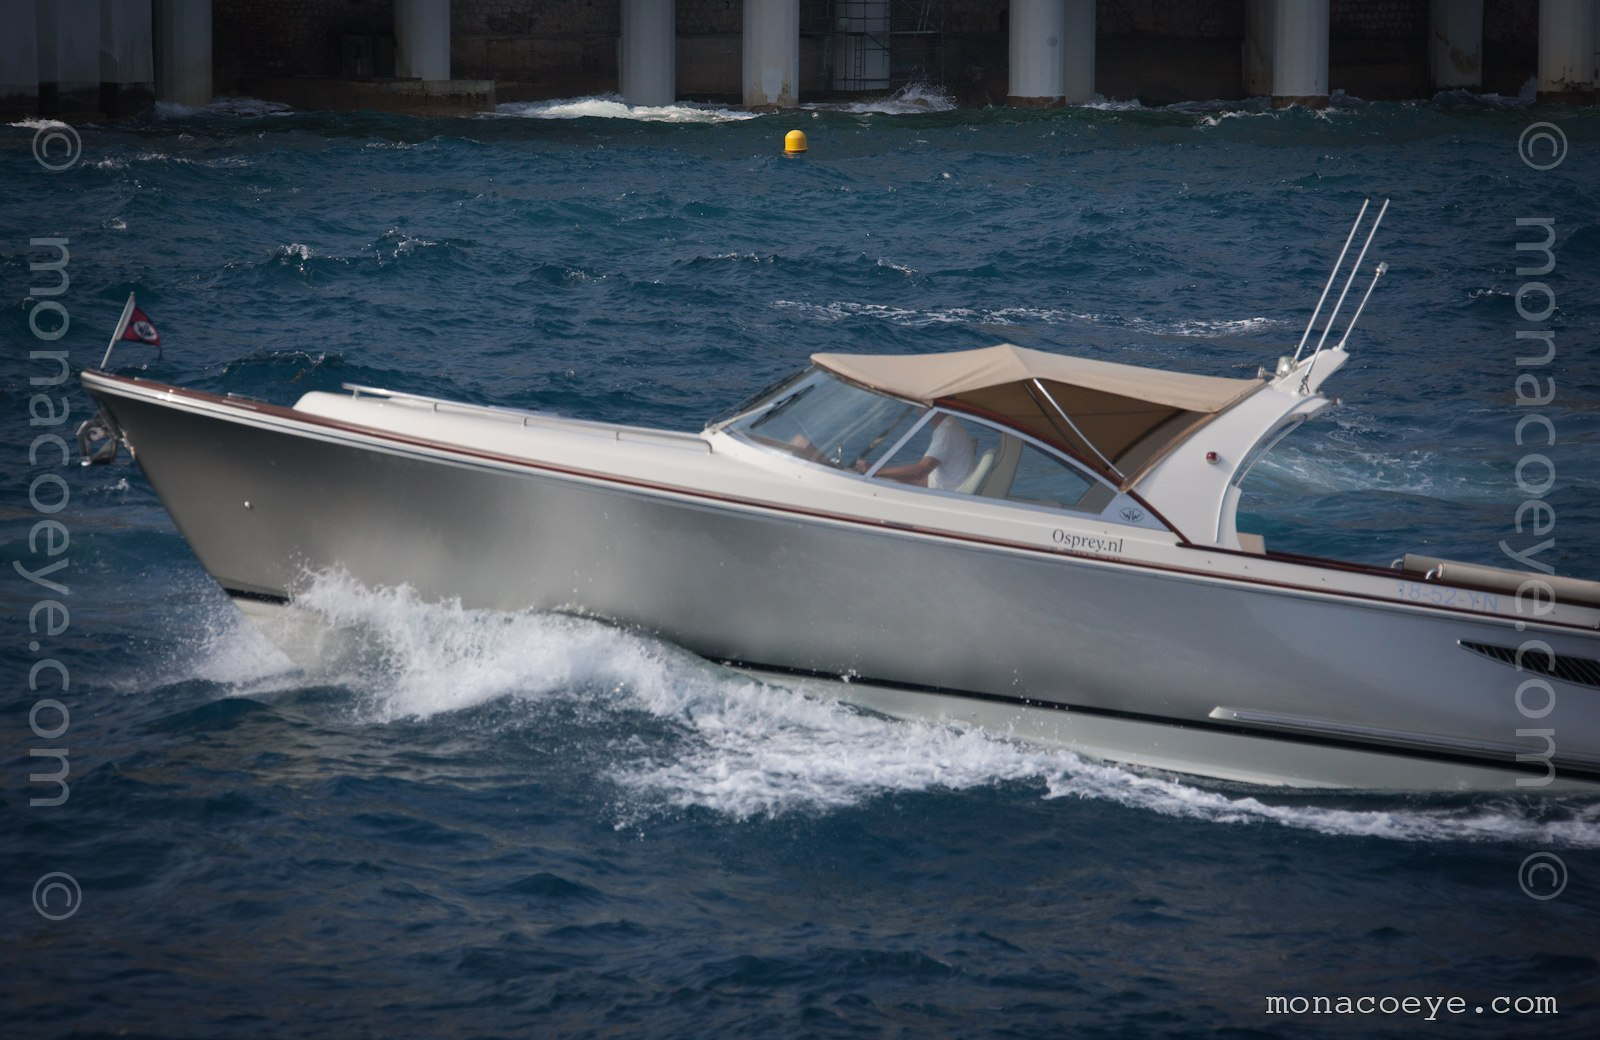 Osprey. Several models of the Wajer Osprey 37 tender, at the Monaco Yacht Show